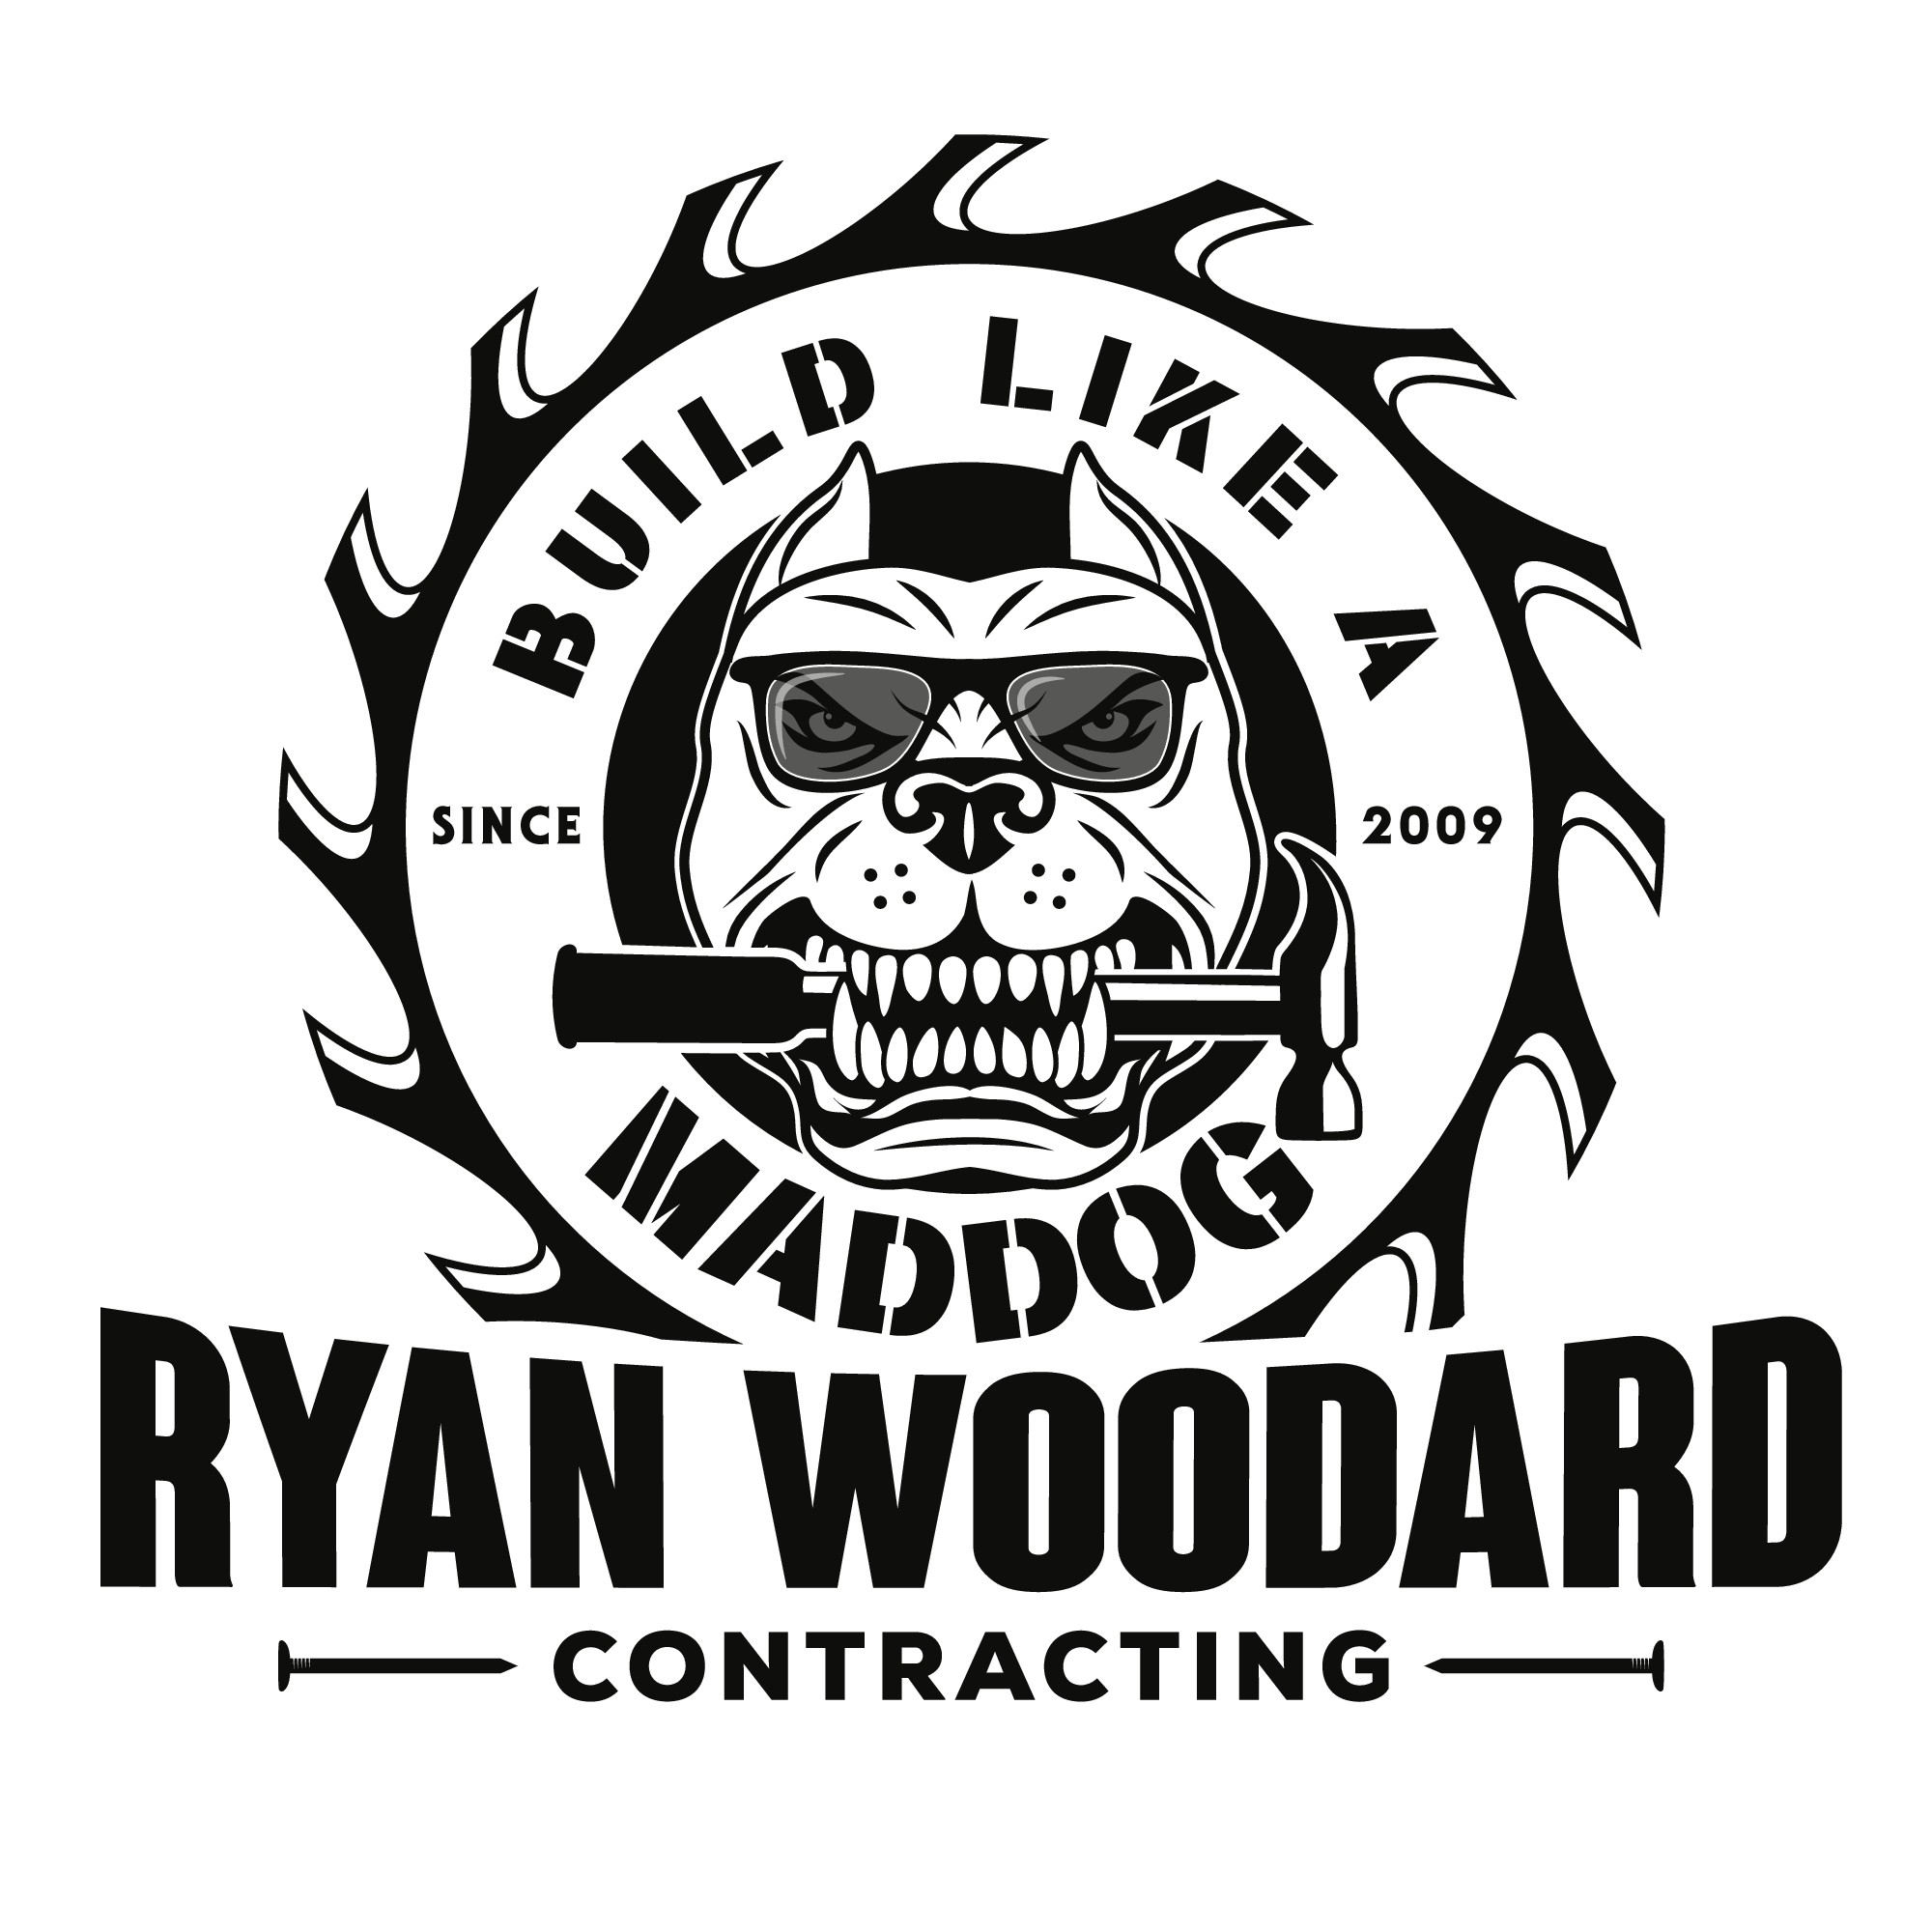 Looking to bring a unique logo idea to life for construction business